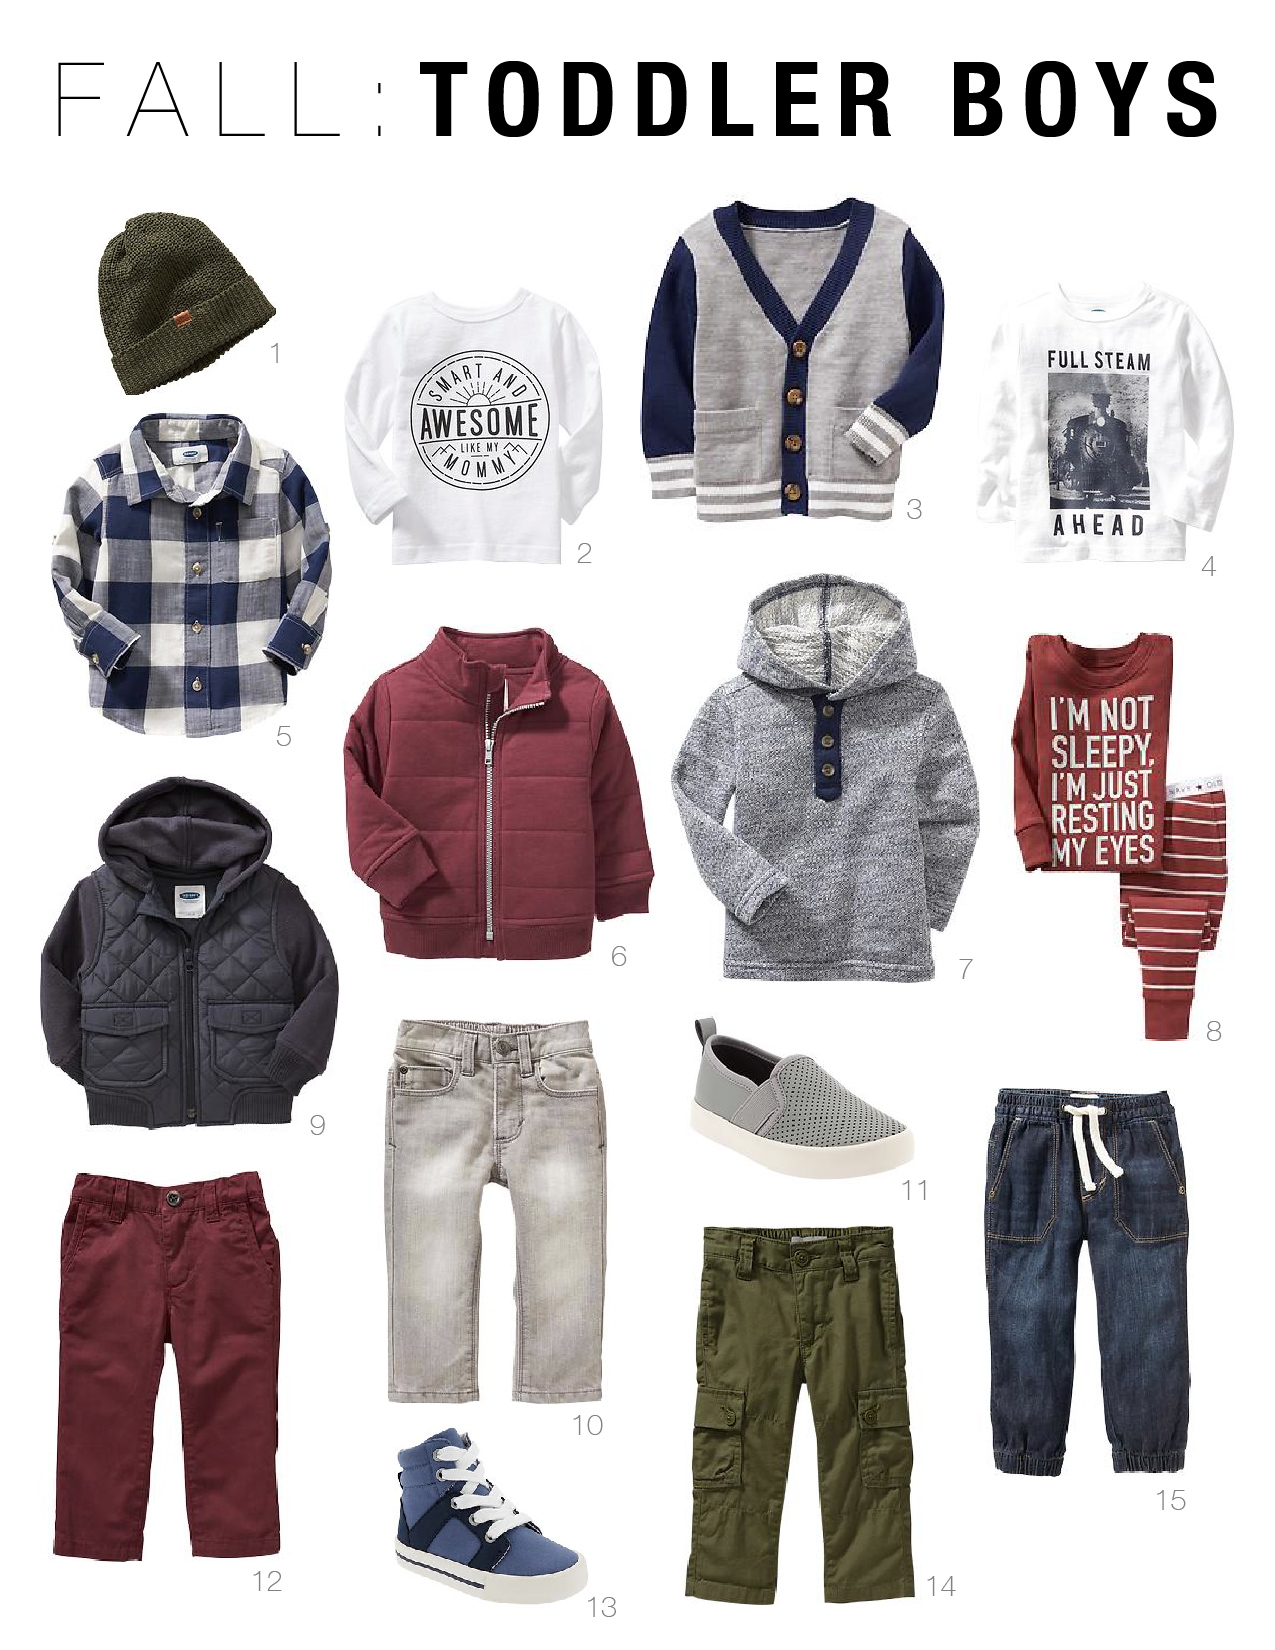 Toddler Boy Fall 2015